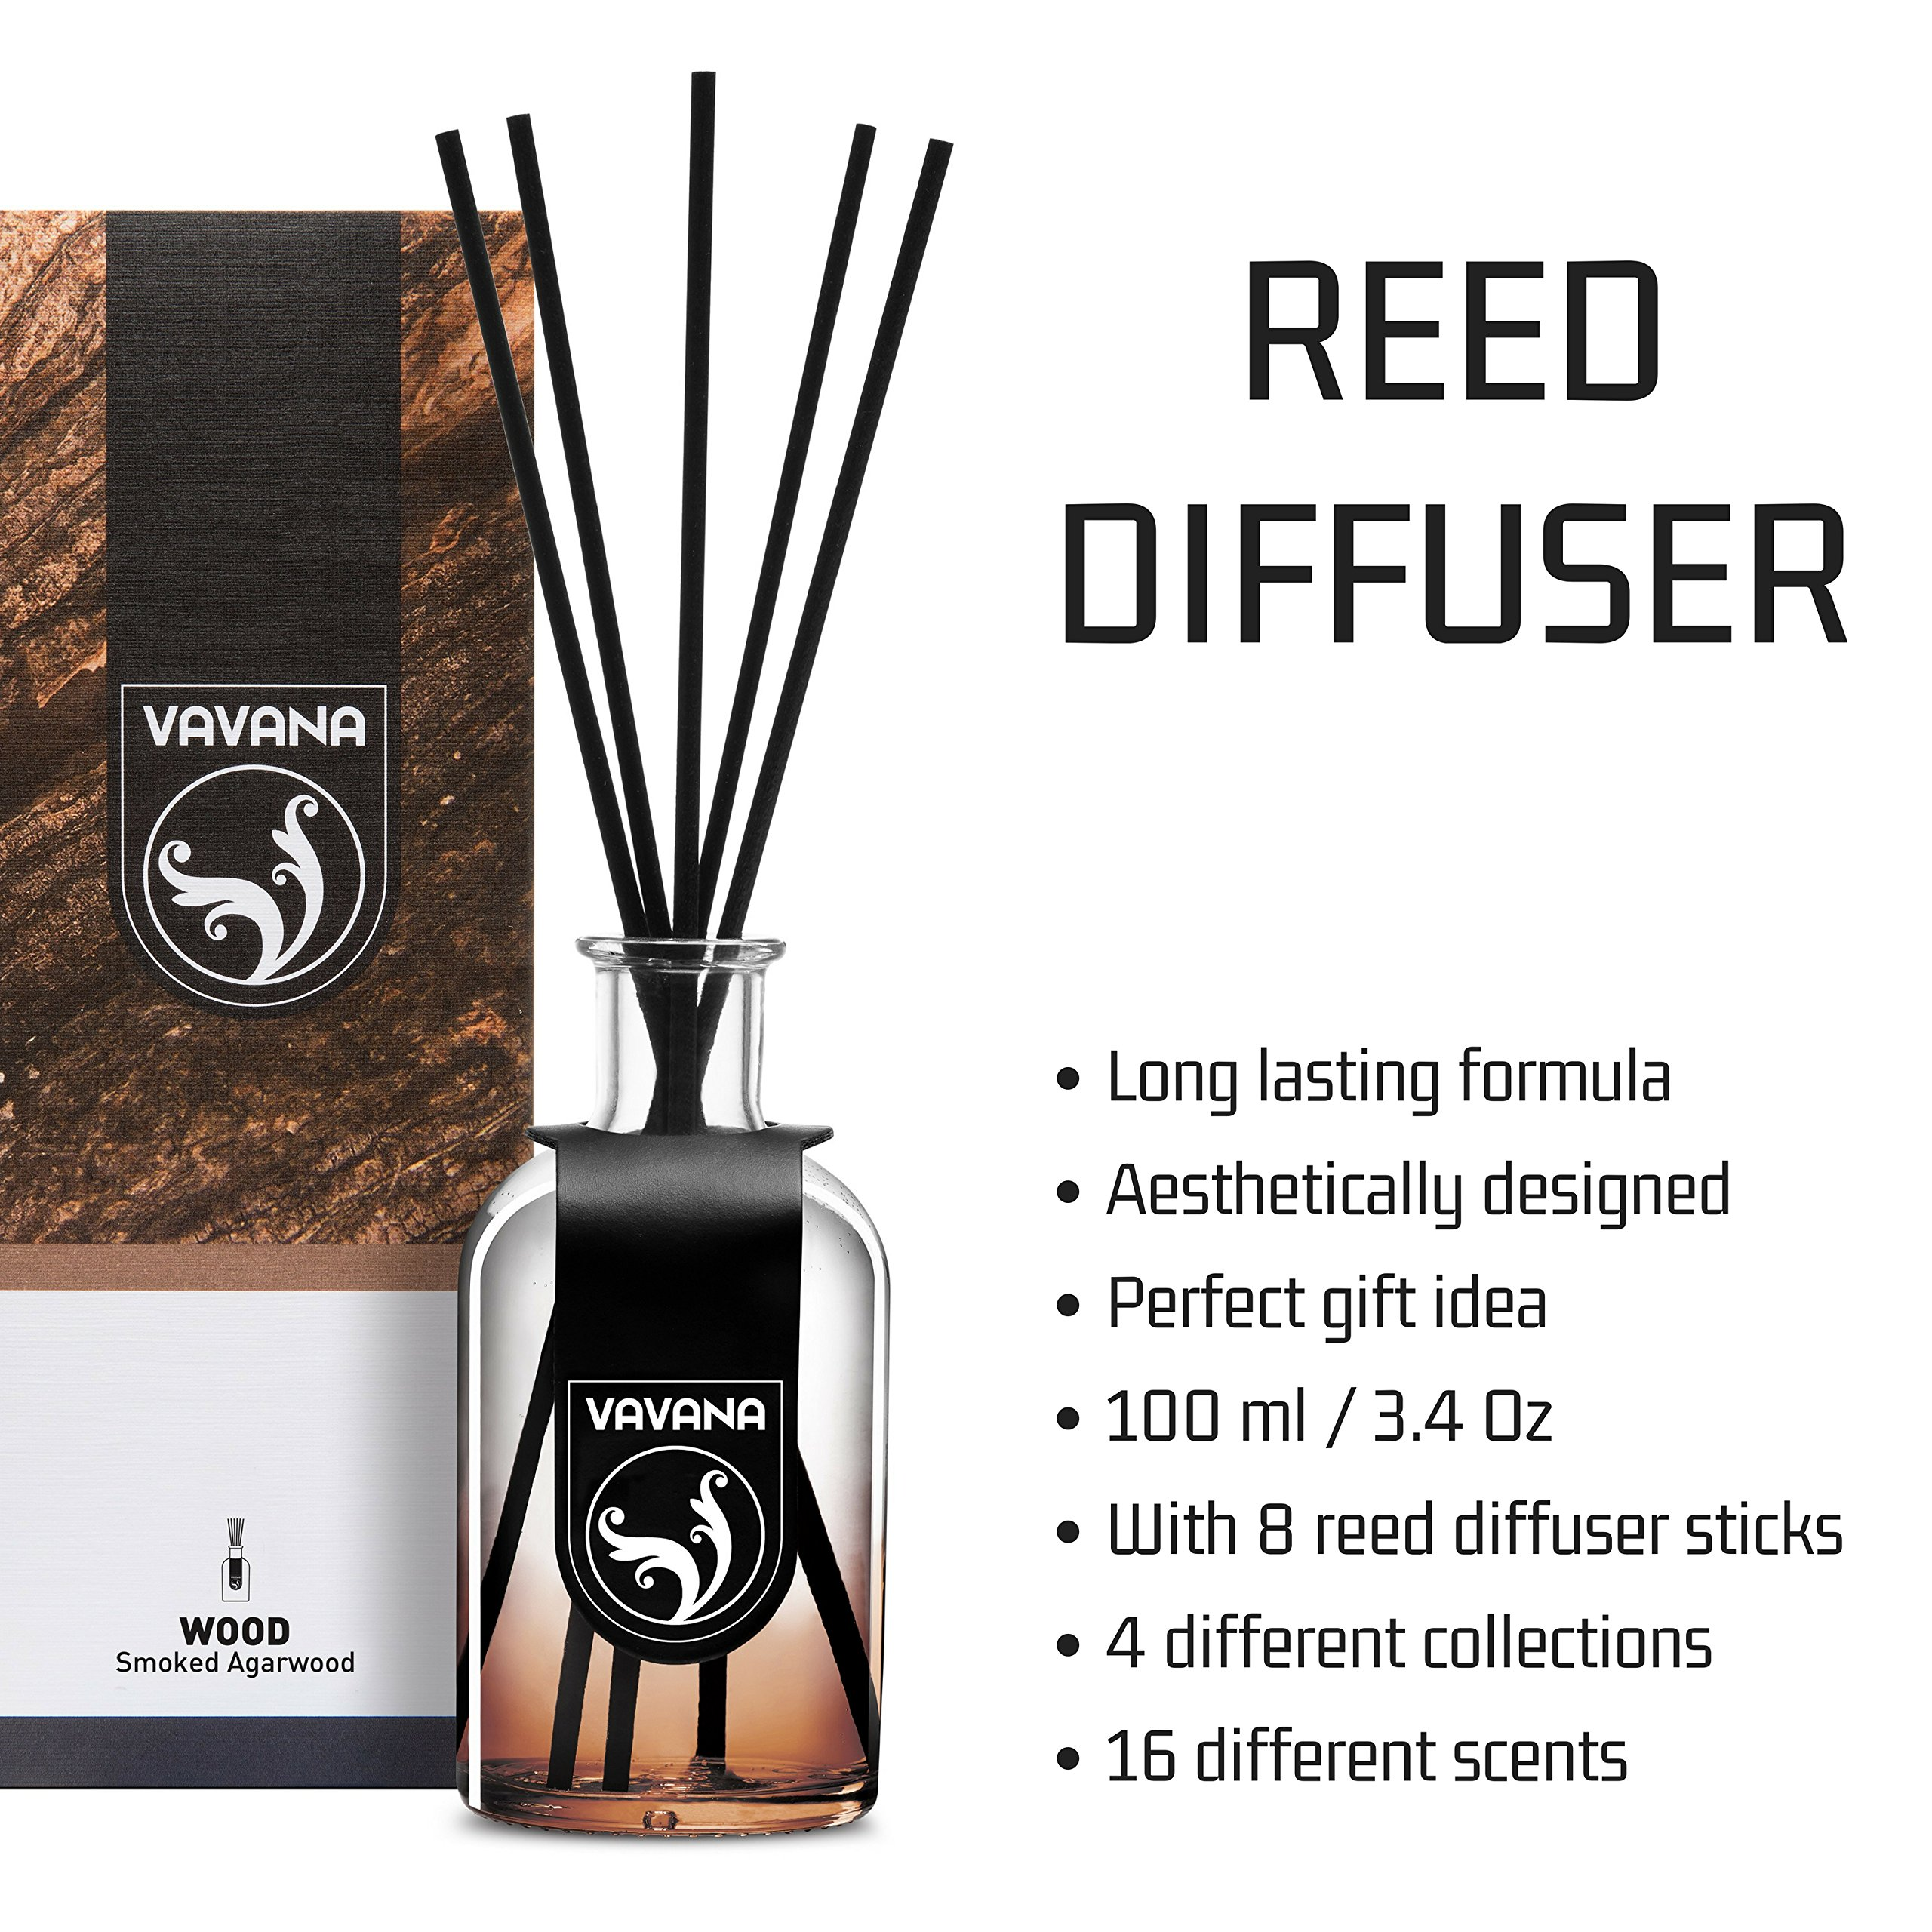 VAVANA Aromatherapy Diffuser Sticks   Reed Diffuser Set   Aromatic Home Fragrance Set   Essential Oil Diffuser Sticks, Made of Natural Scented Oils Blend   100 ML/3.4 OZ - 6 Pack (Smoked A.Wood) by vavana (Image #6)